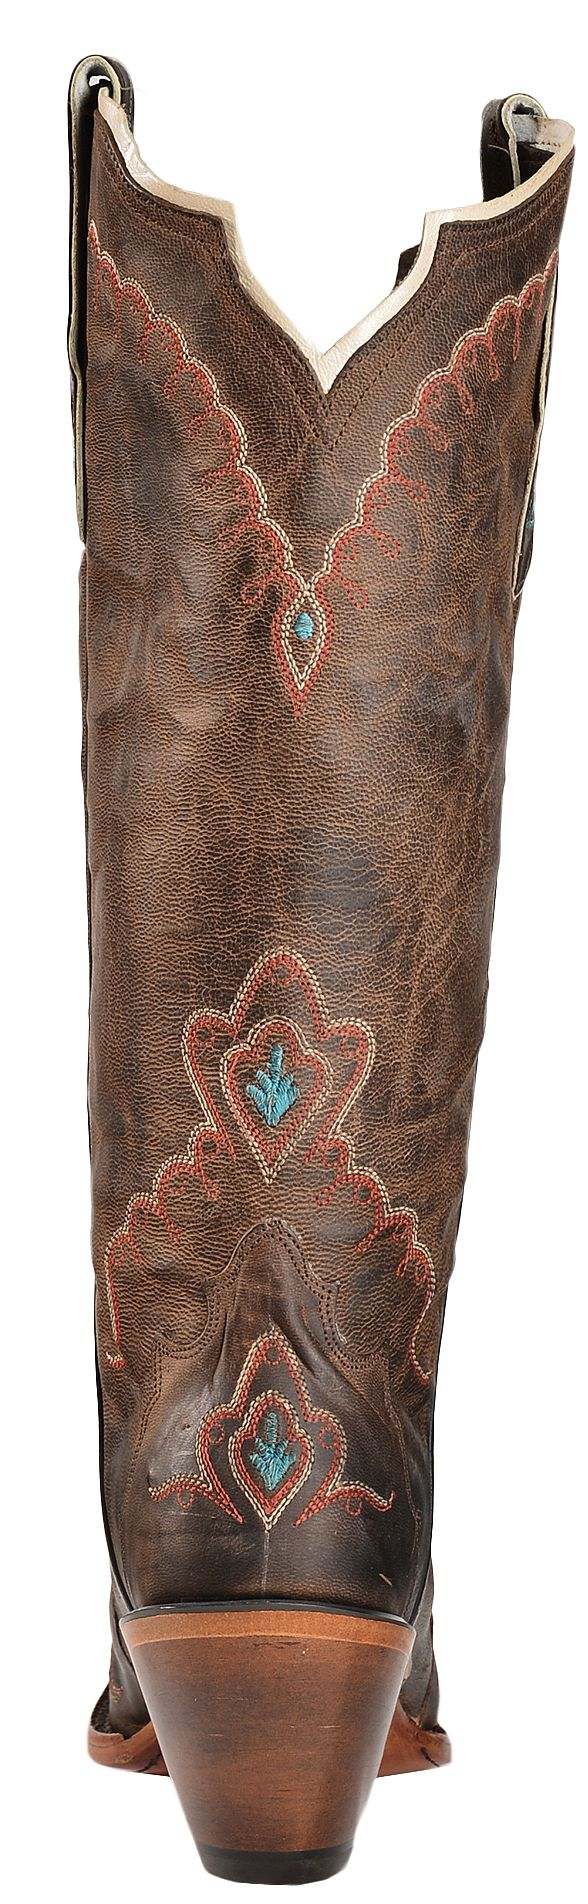 Tony Lama Black Label Tall Cowgirl Boots - Snip Toe - Country ...